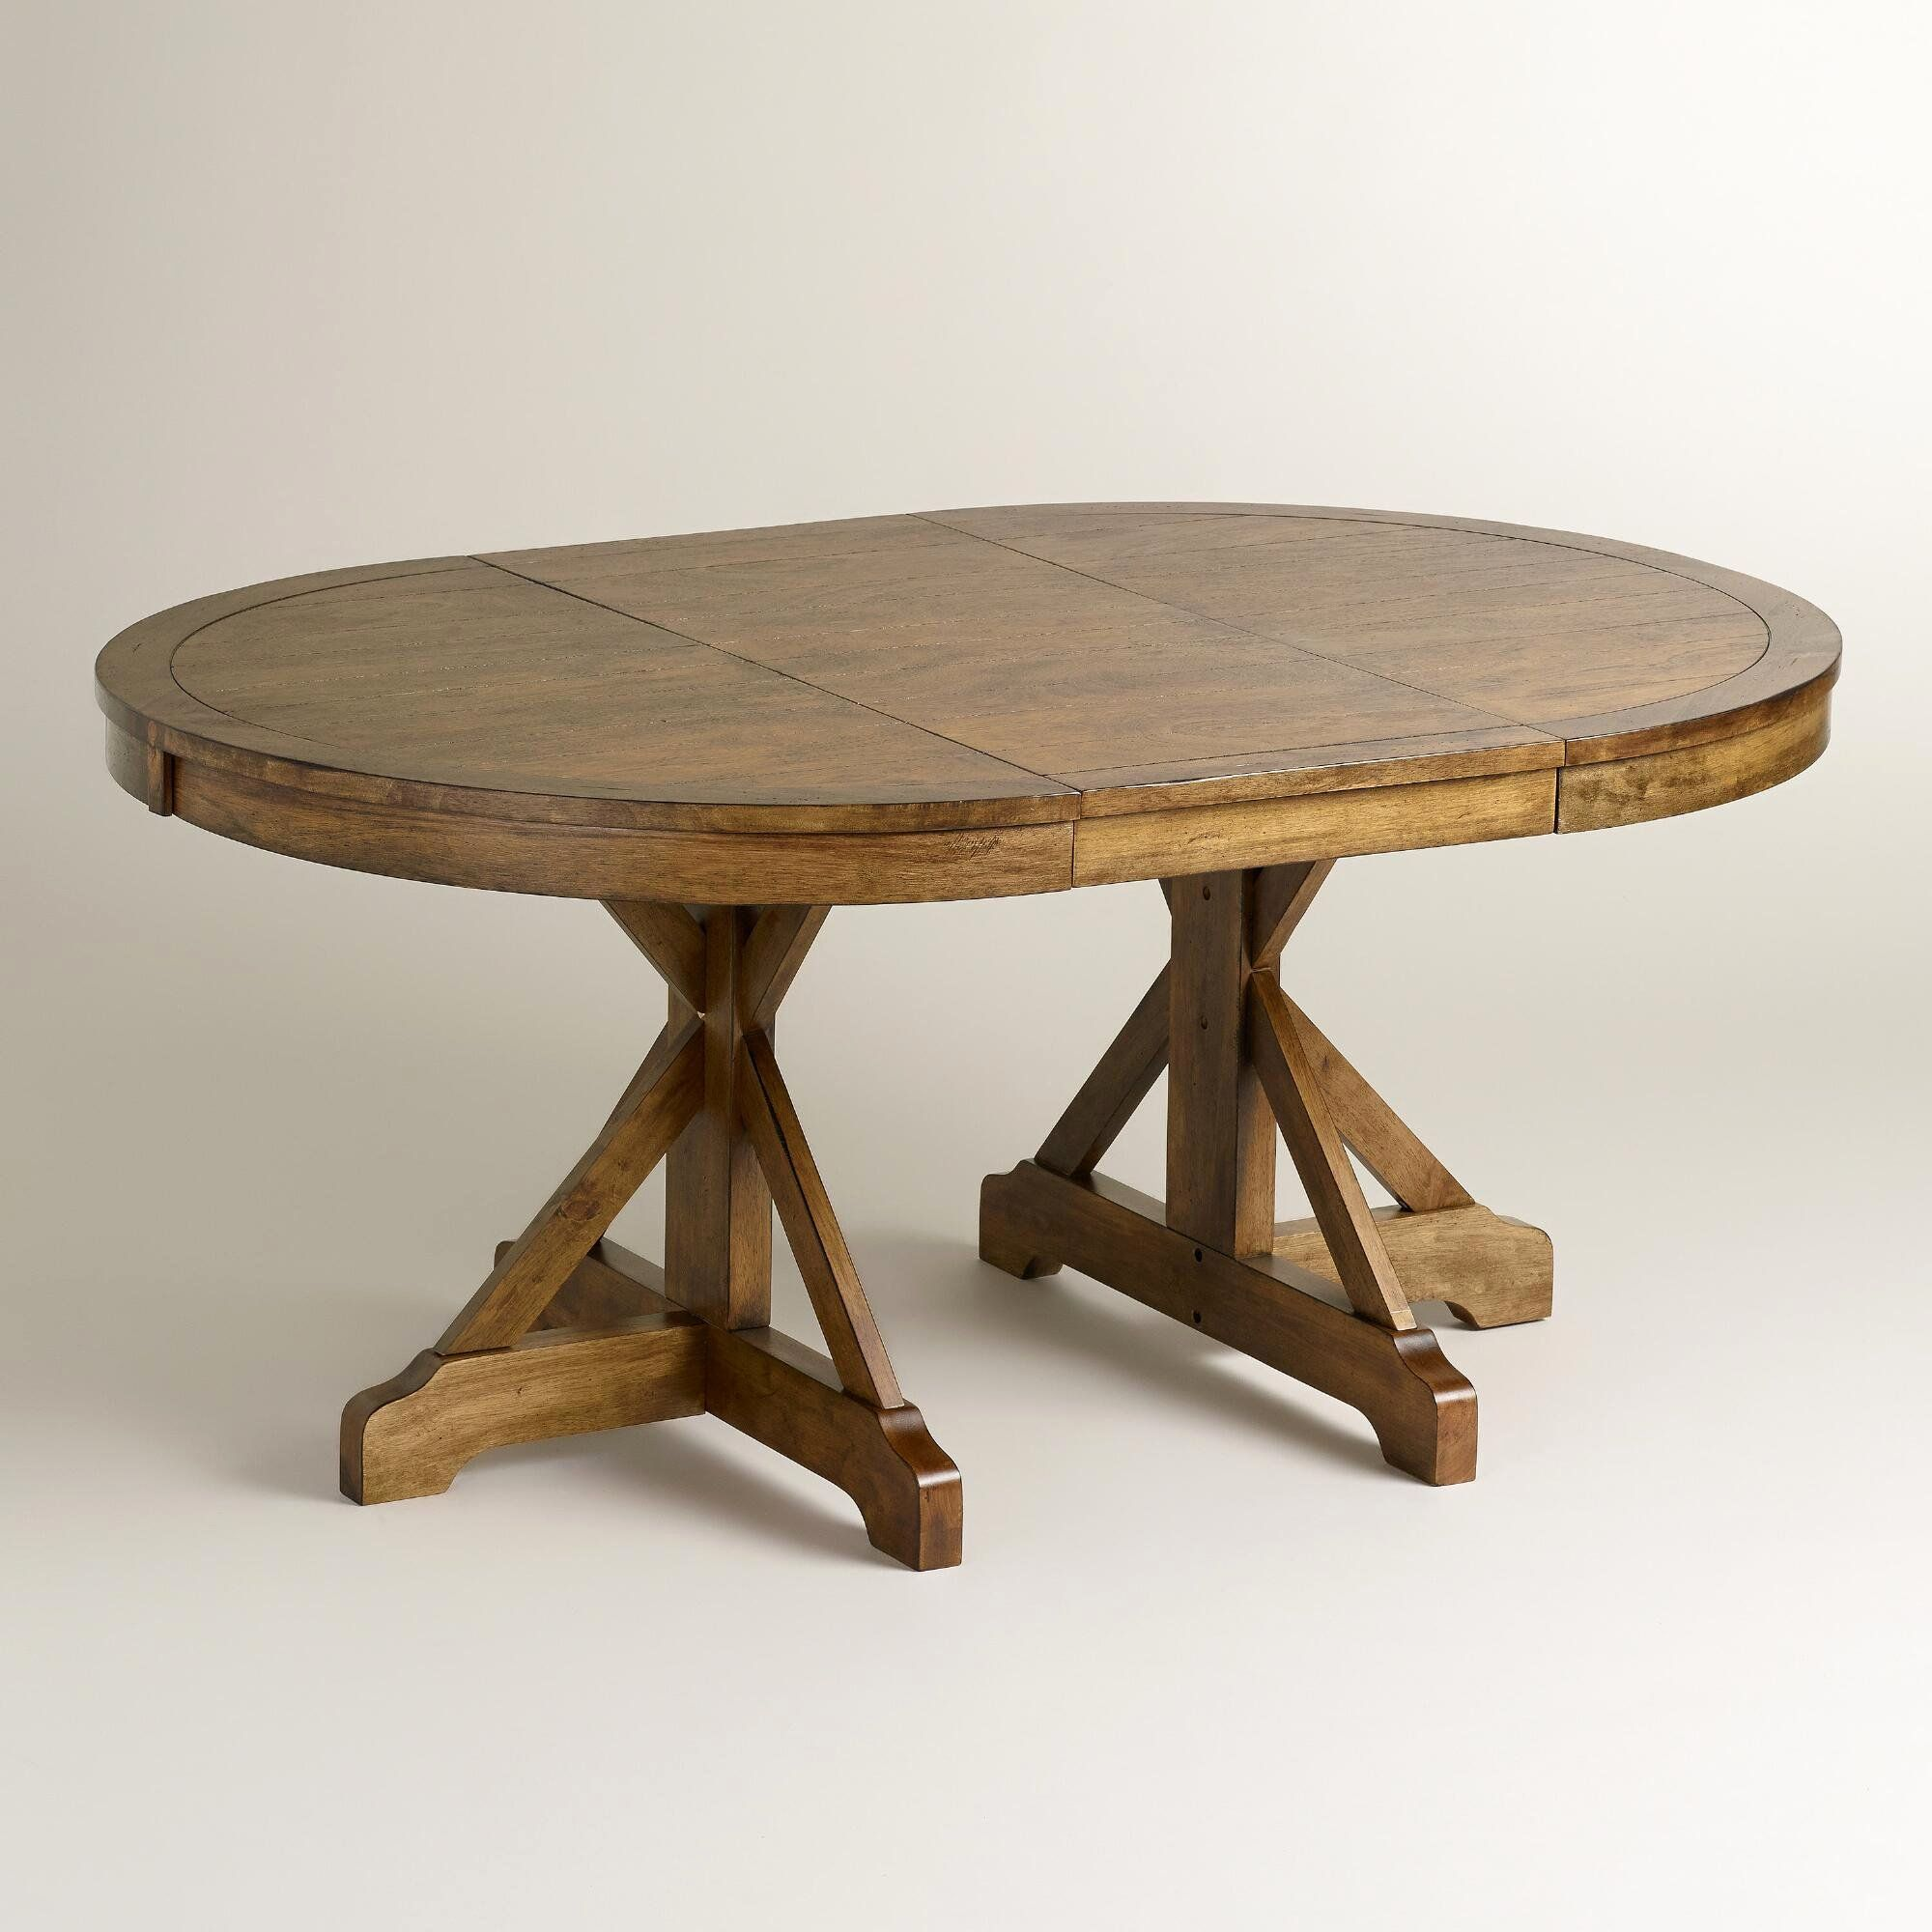 Expandable Round Pedestal Dining Table: Review of 10 ...